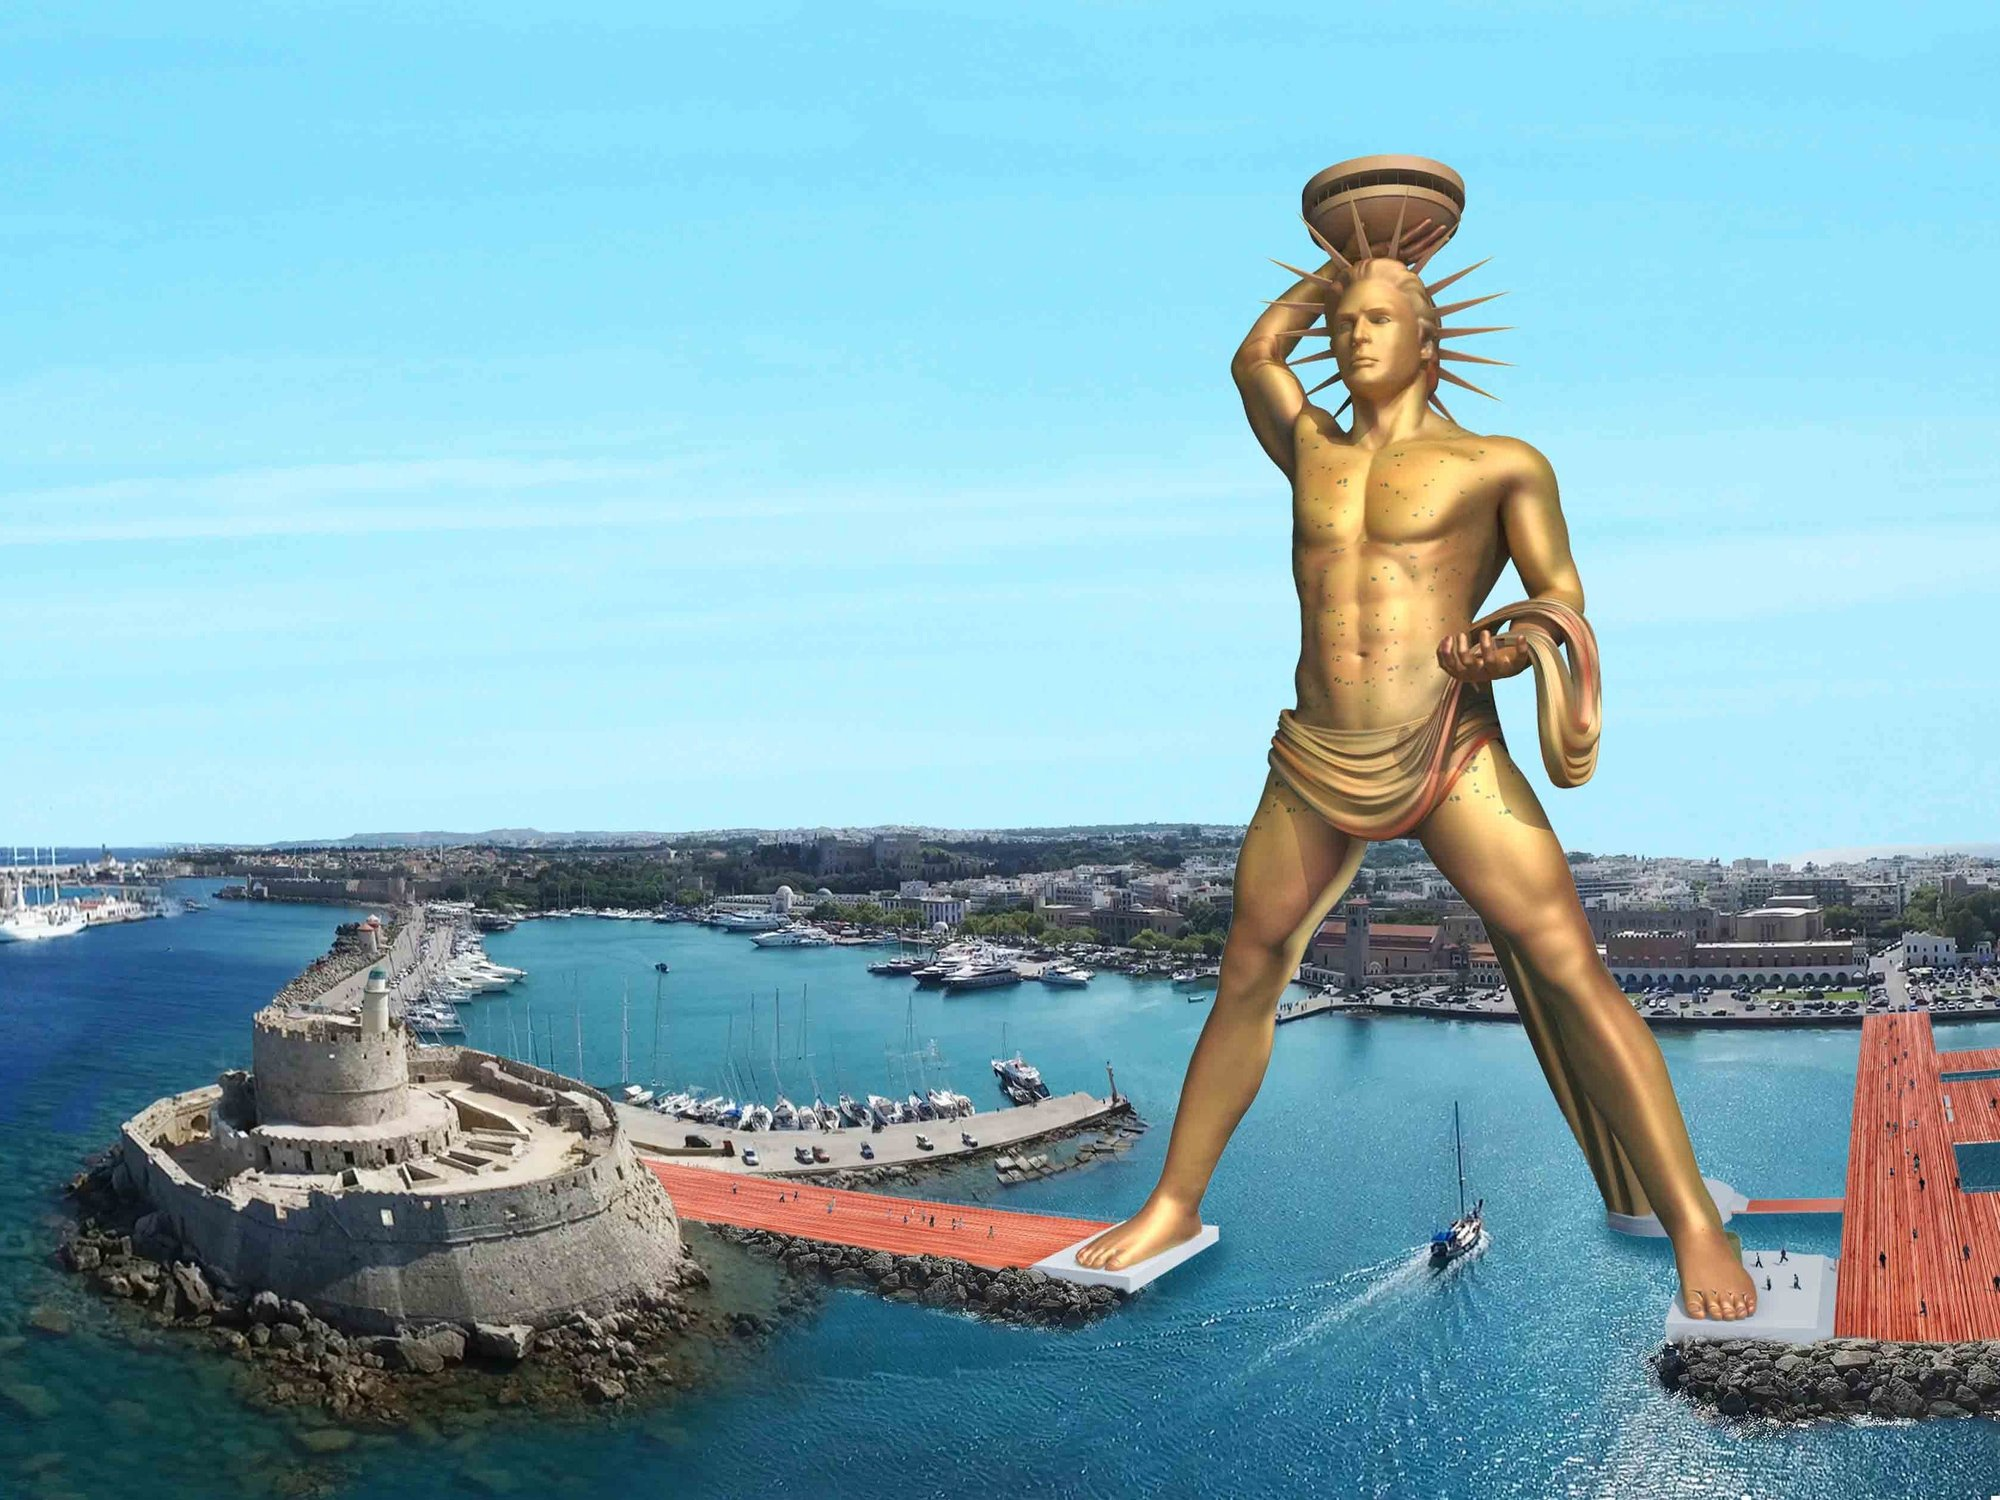 postmodernism tag  plans for a new ultra postmodern colossus of rhodes are brewing proposed